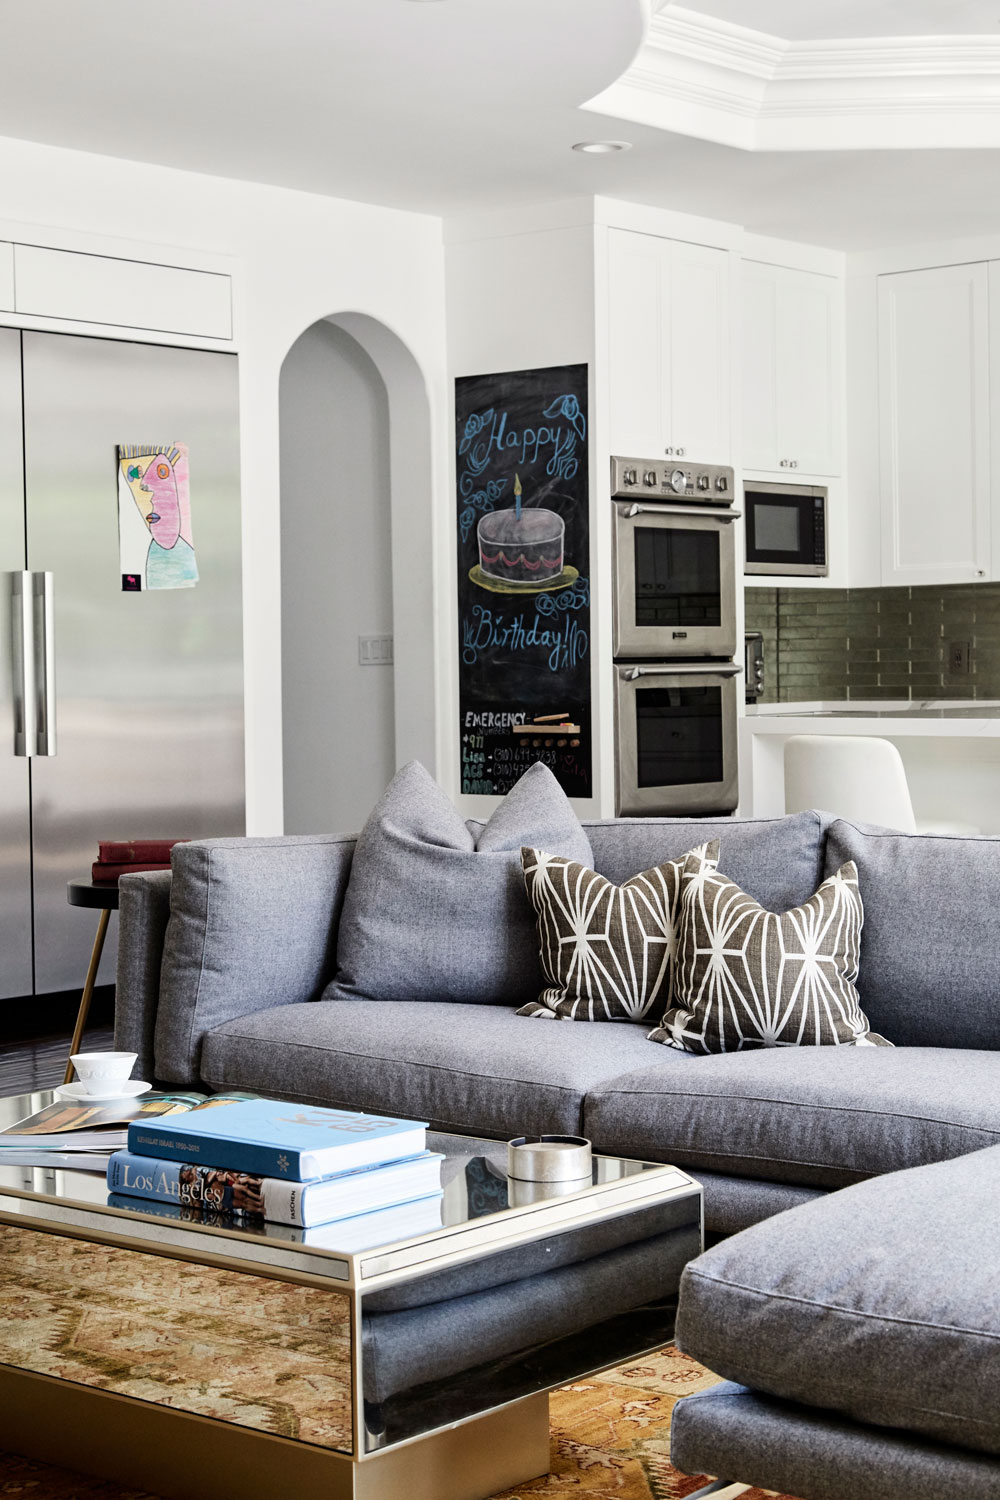 The repetition of silver and mirrored-finishes made the great room and kitchen feel cohesive, fresh and sophisticated.